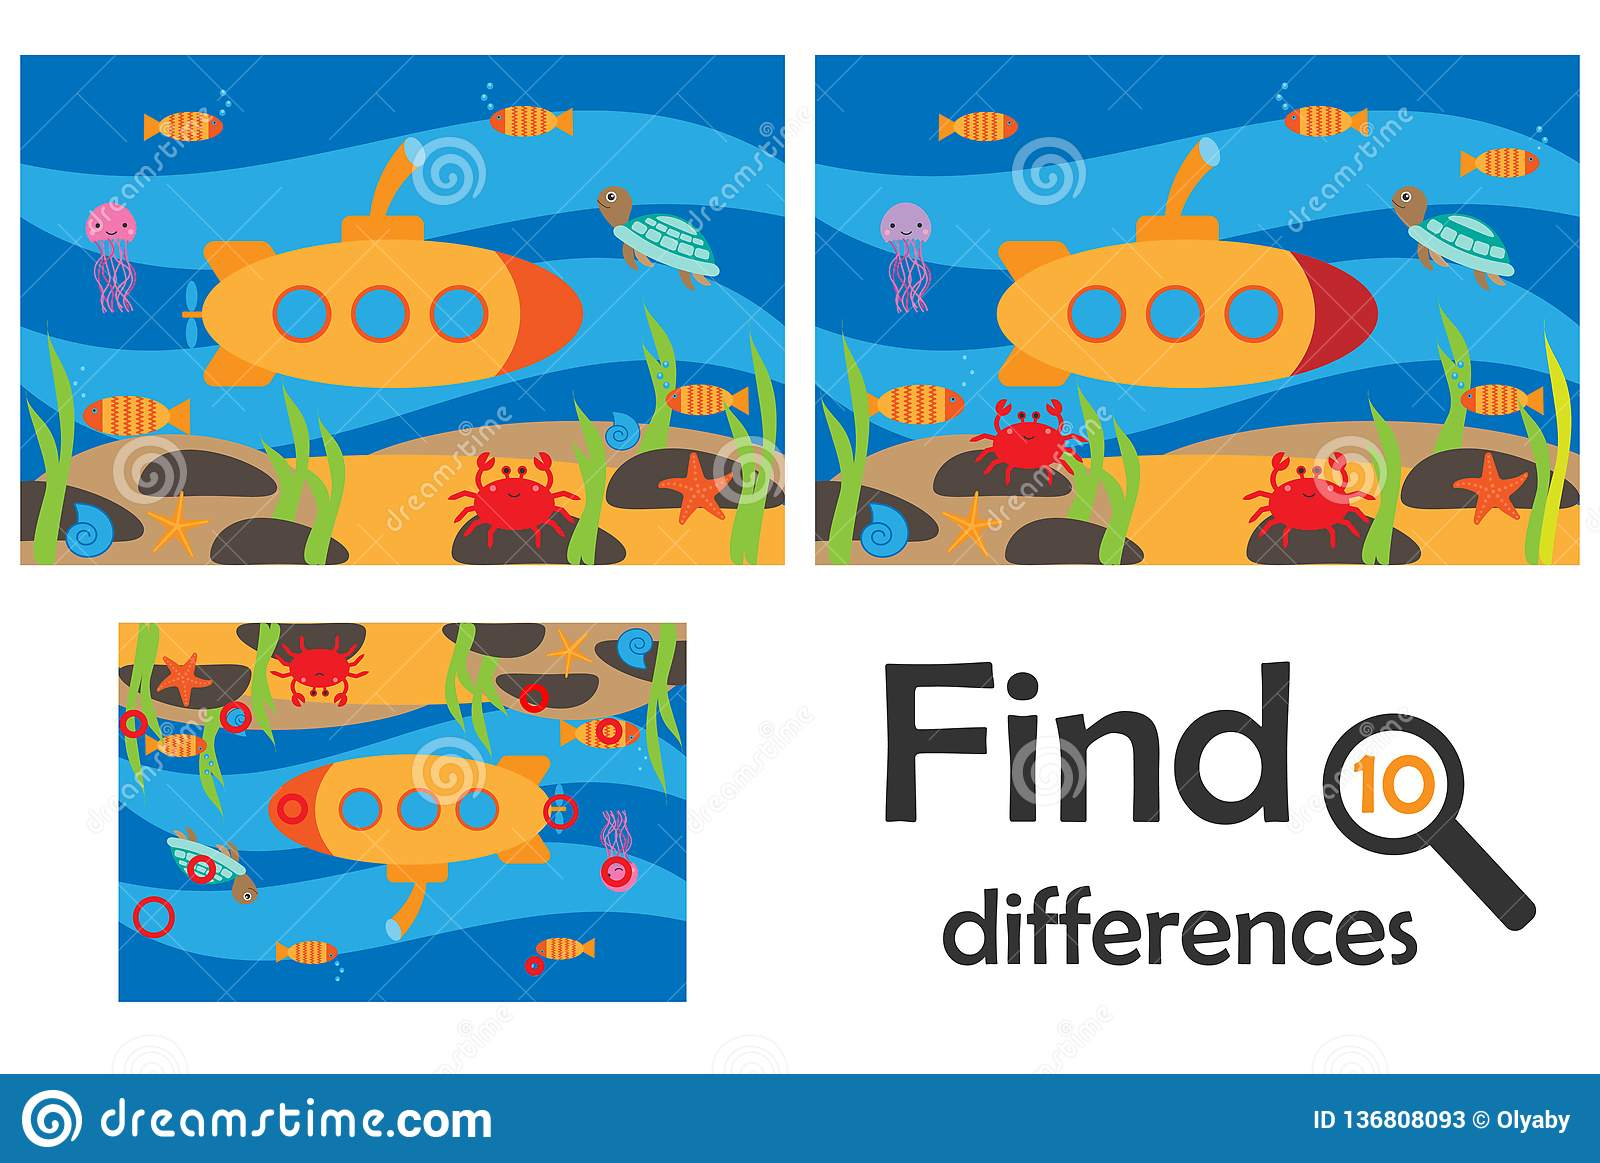 Find 10 Differences Game For Children Sea World